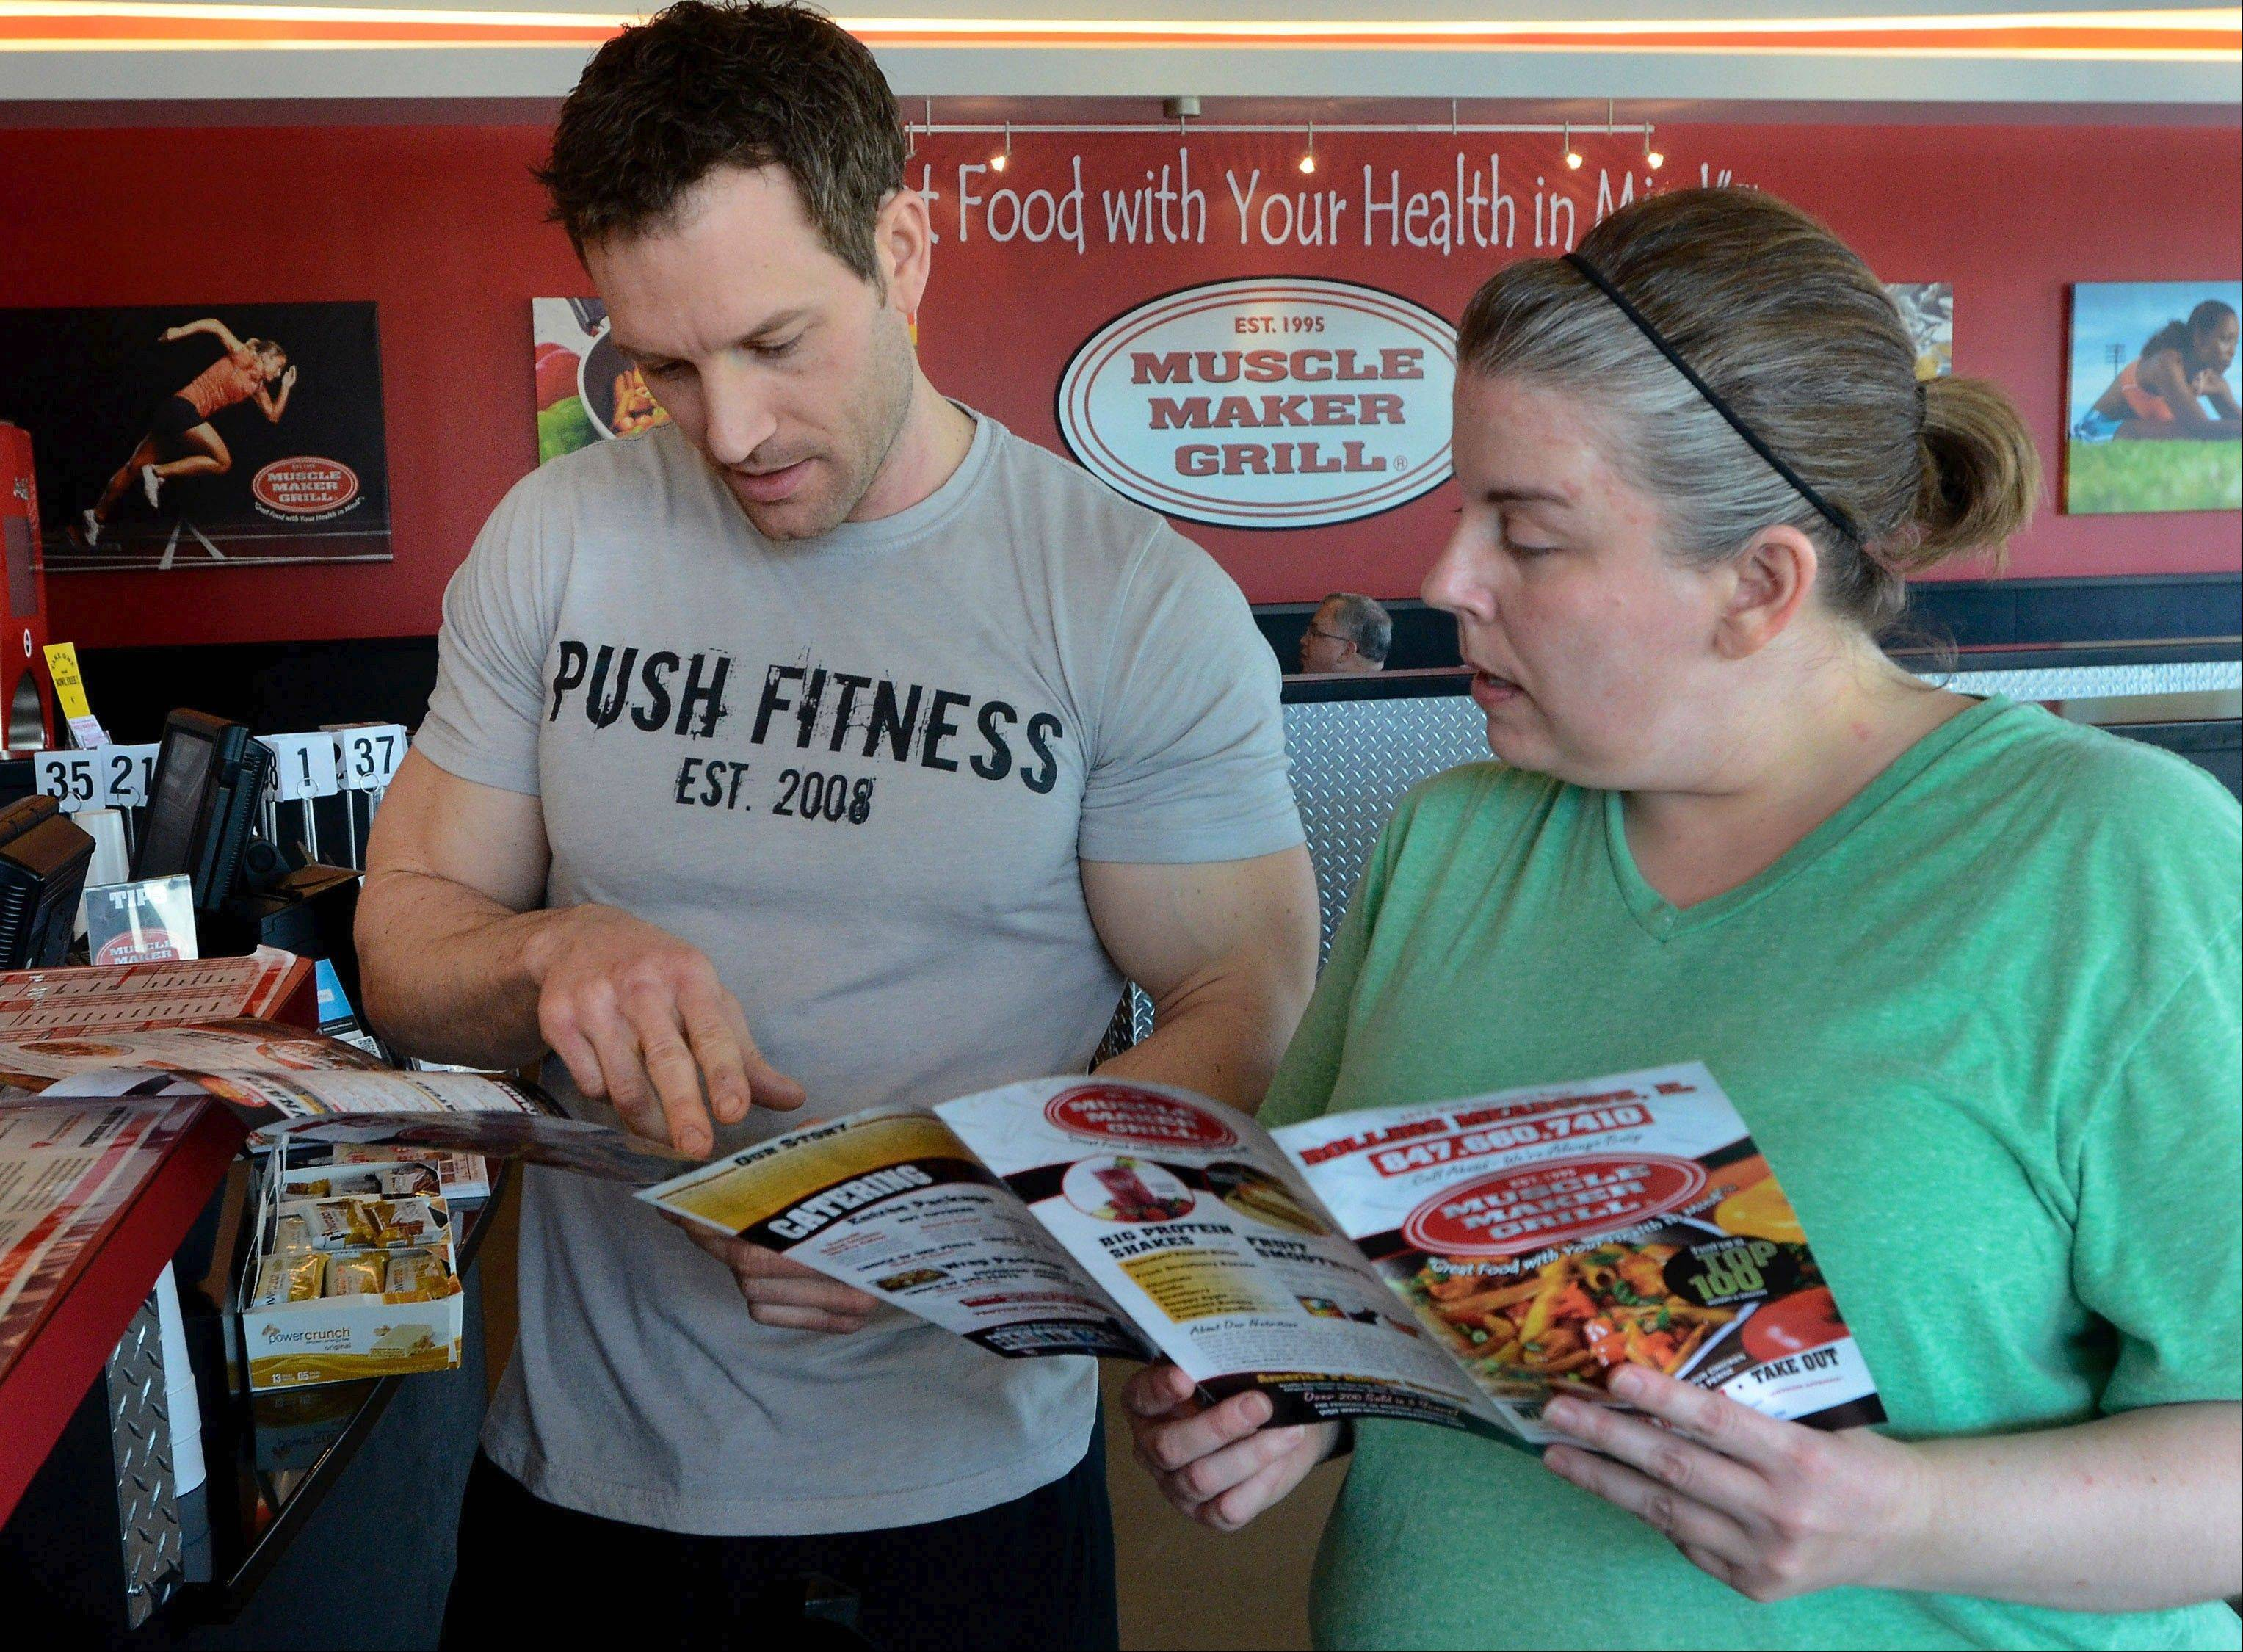 Bob Chwedyk/bchwedyk@dailyherald.comPush Fitness trainer Joshua Steckler and DH participant Melynda Findlay check out Muscle Maker Grill in Rolling Meadows.